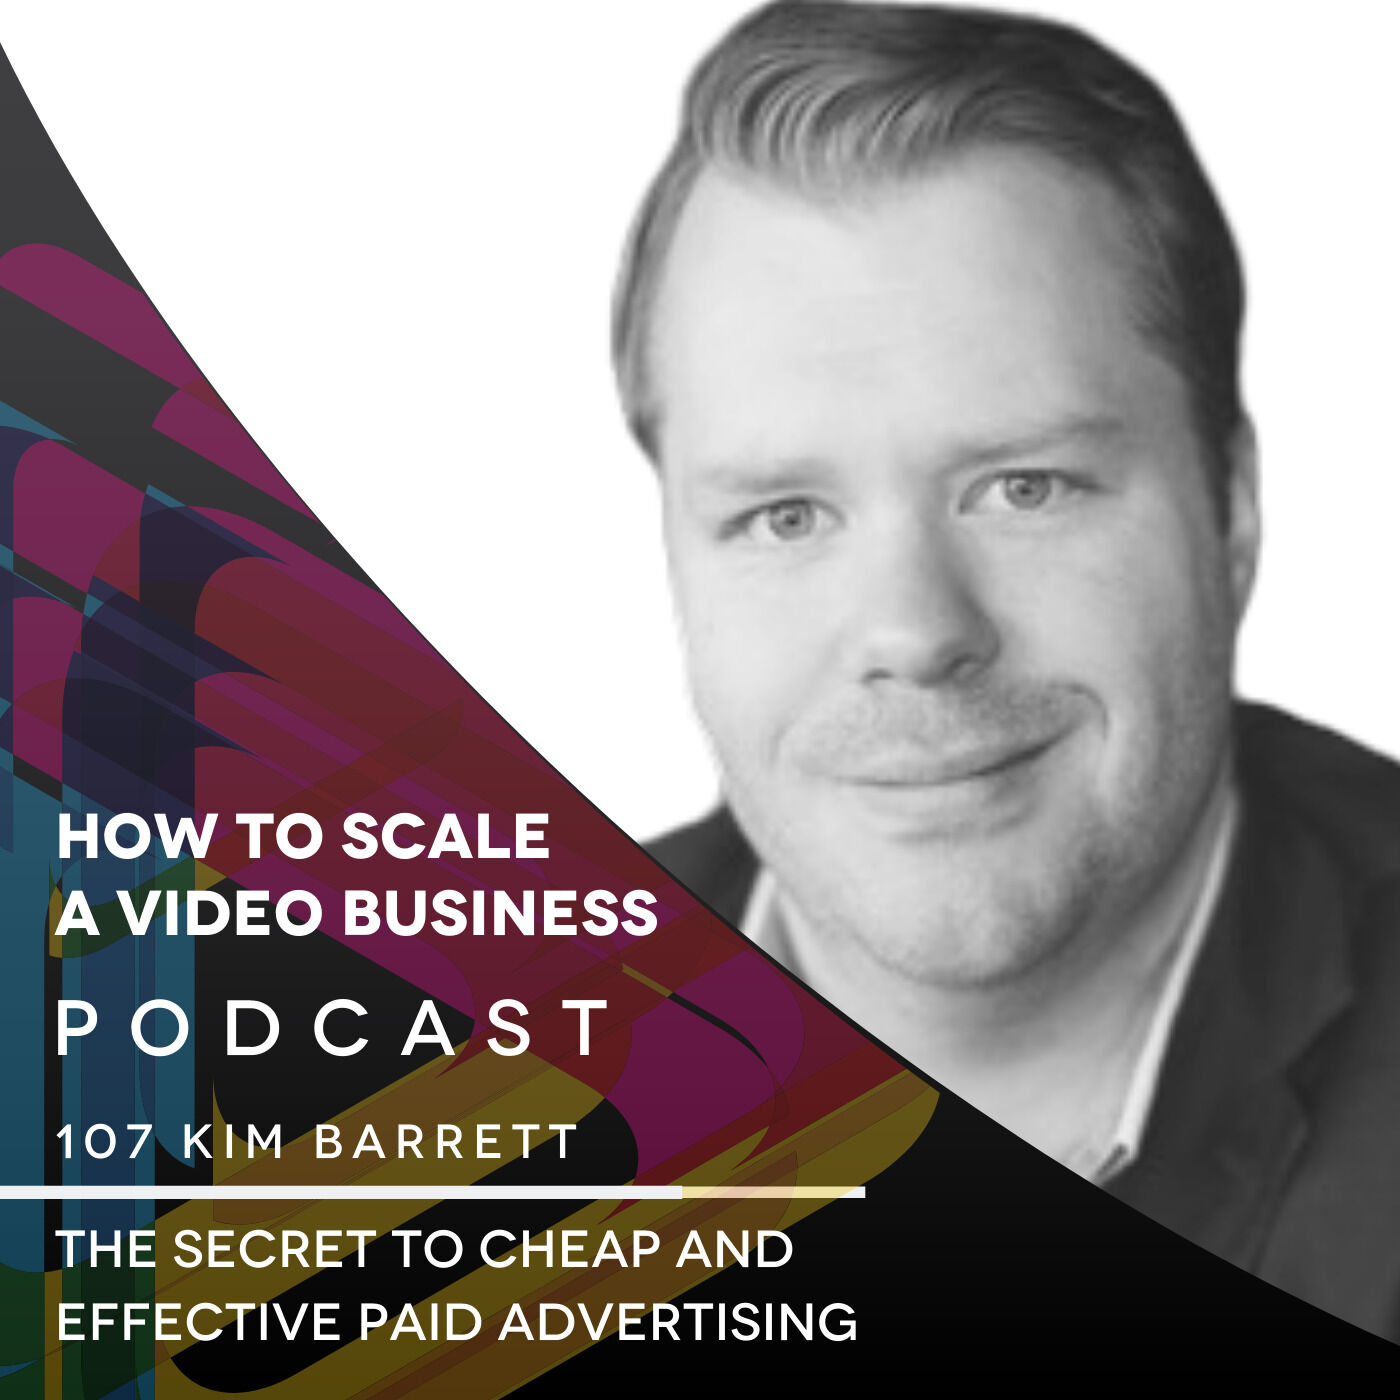 The Secret To Cheap and Effective Paid Advertising - EP #107 with Kim Barrett